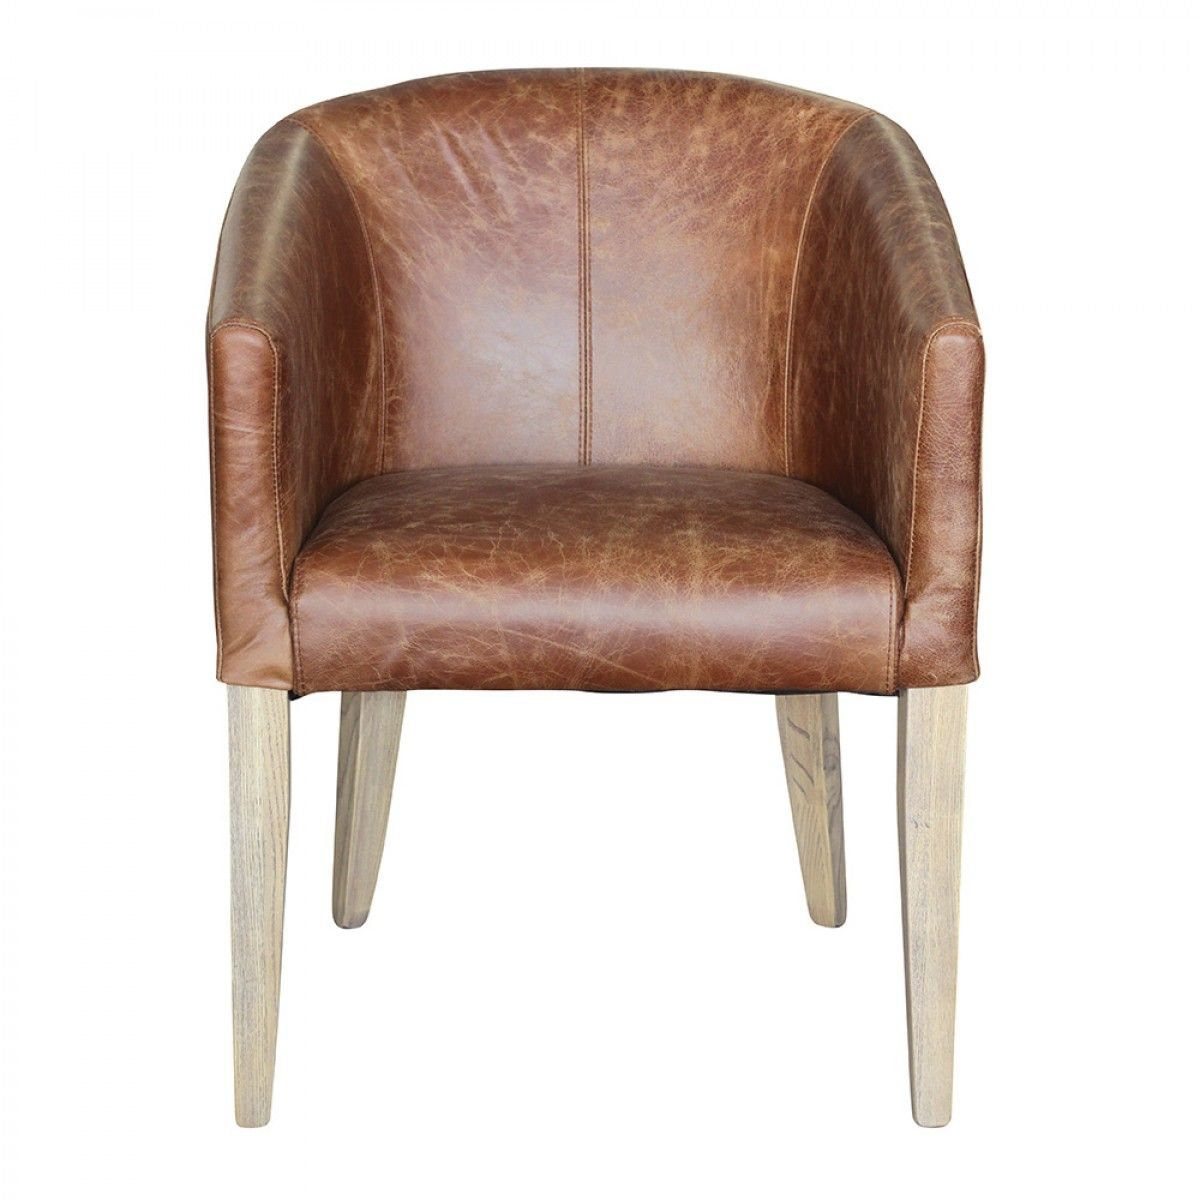 Keaton Tub Chair Vintage Brown - Armchairs - Upholstery. Another ...